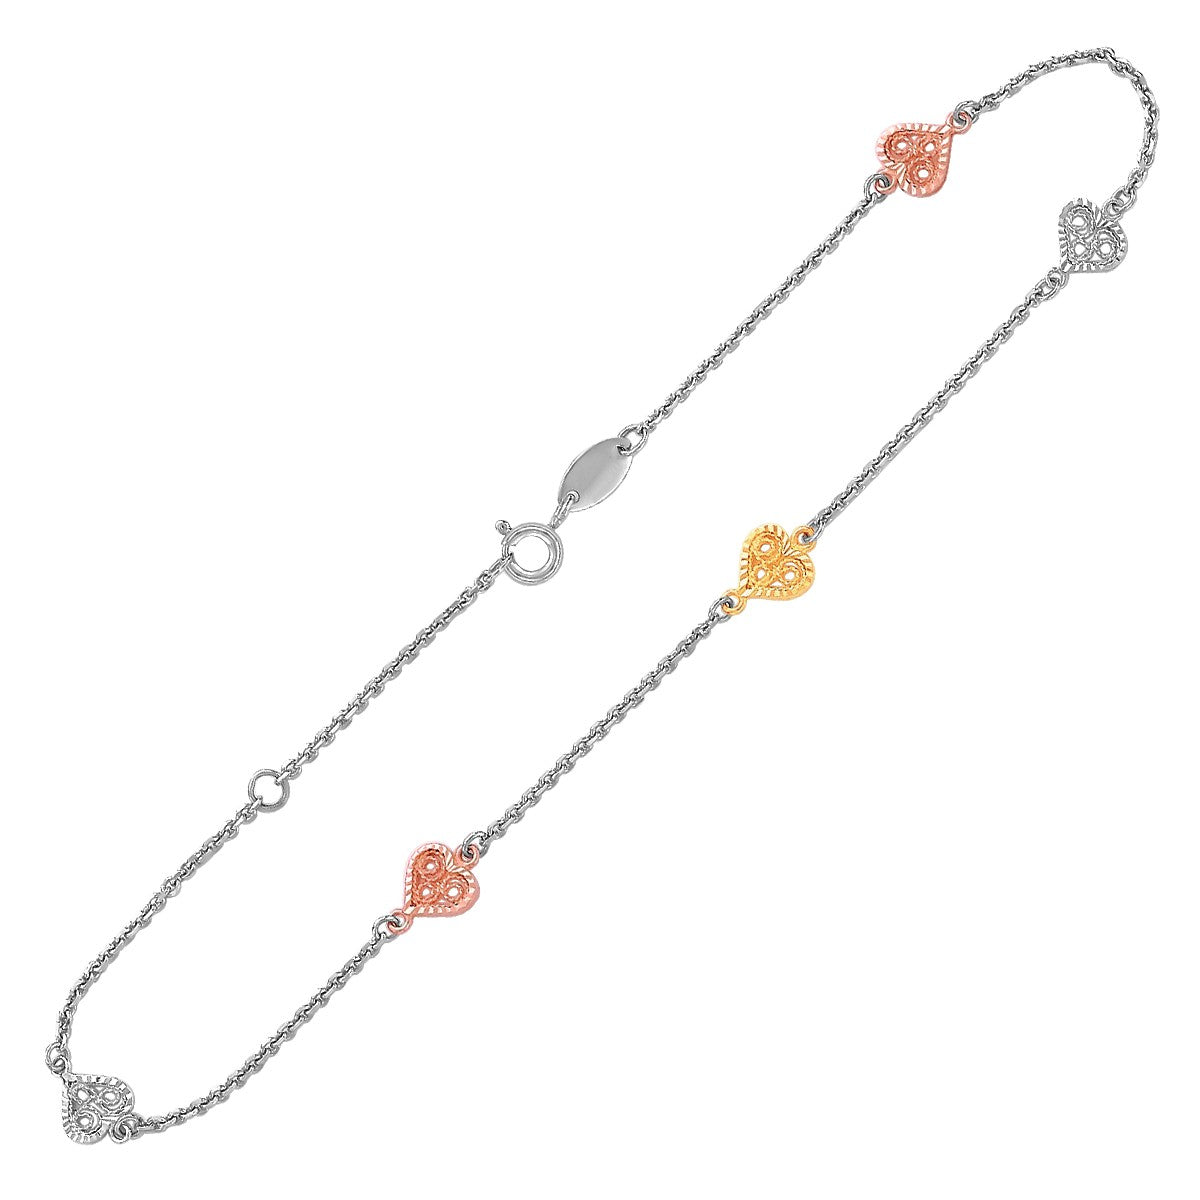 14K Yellow and Rose Gold and Sterling Silver Anklet with Filigree Heart Stations - Uniquepedia.com